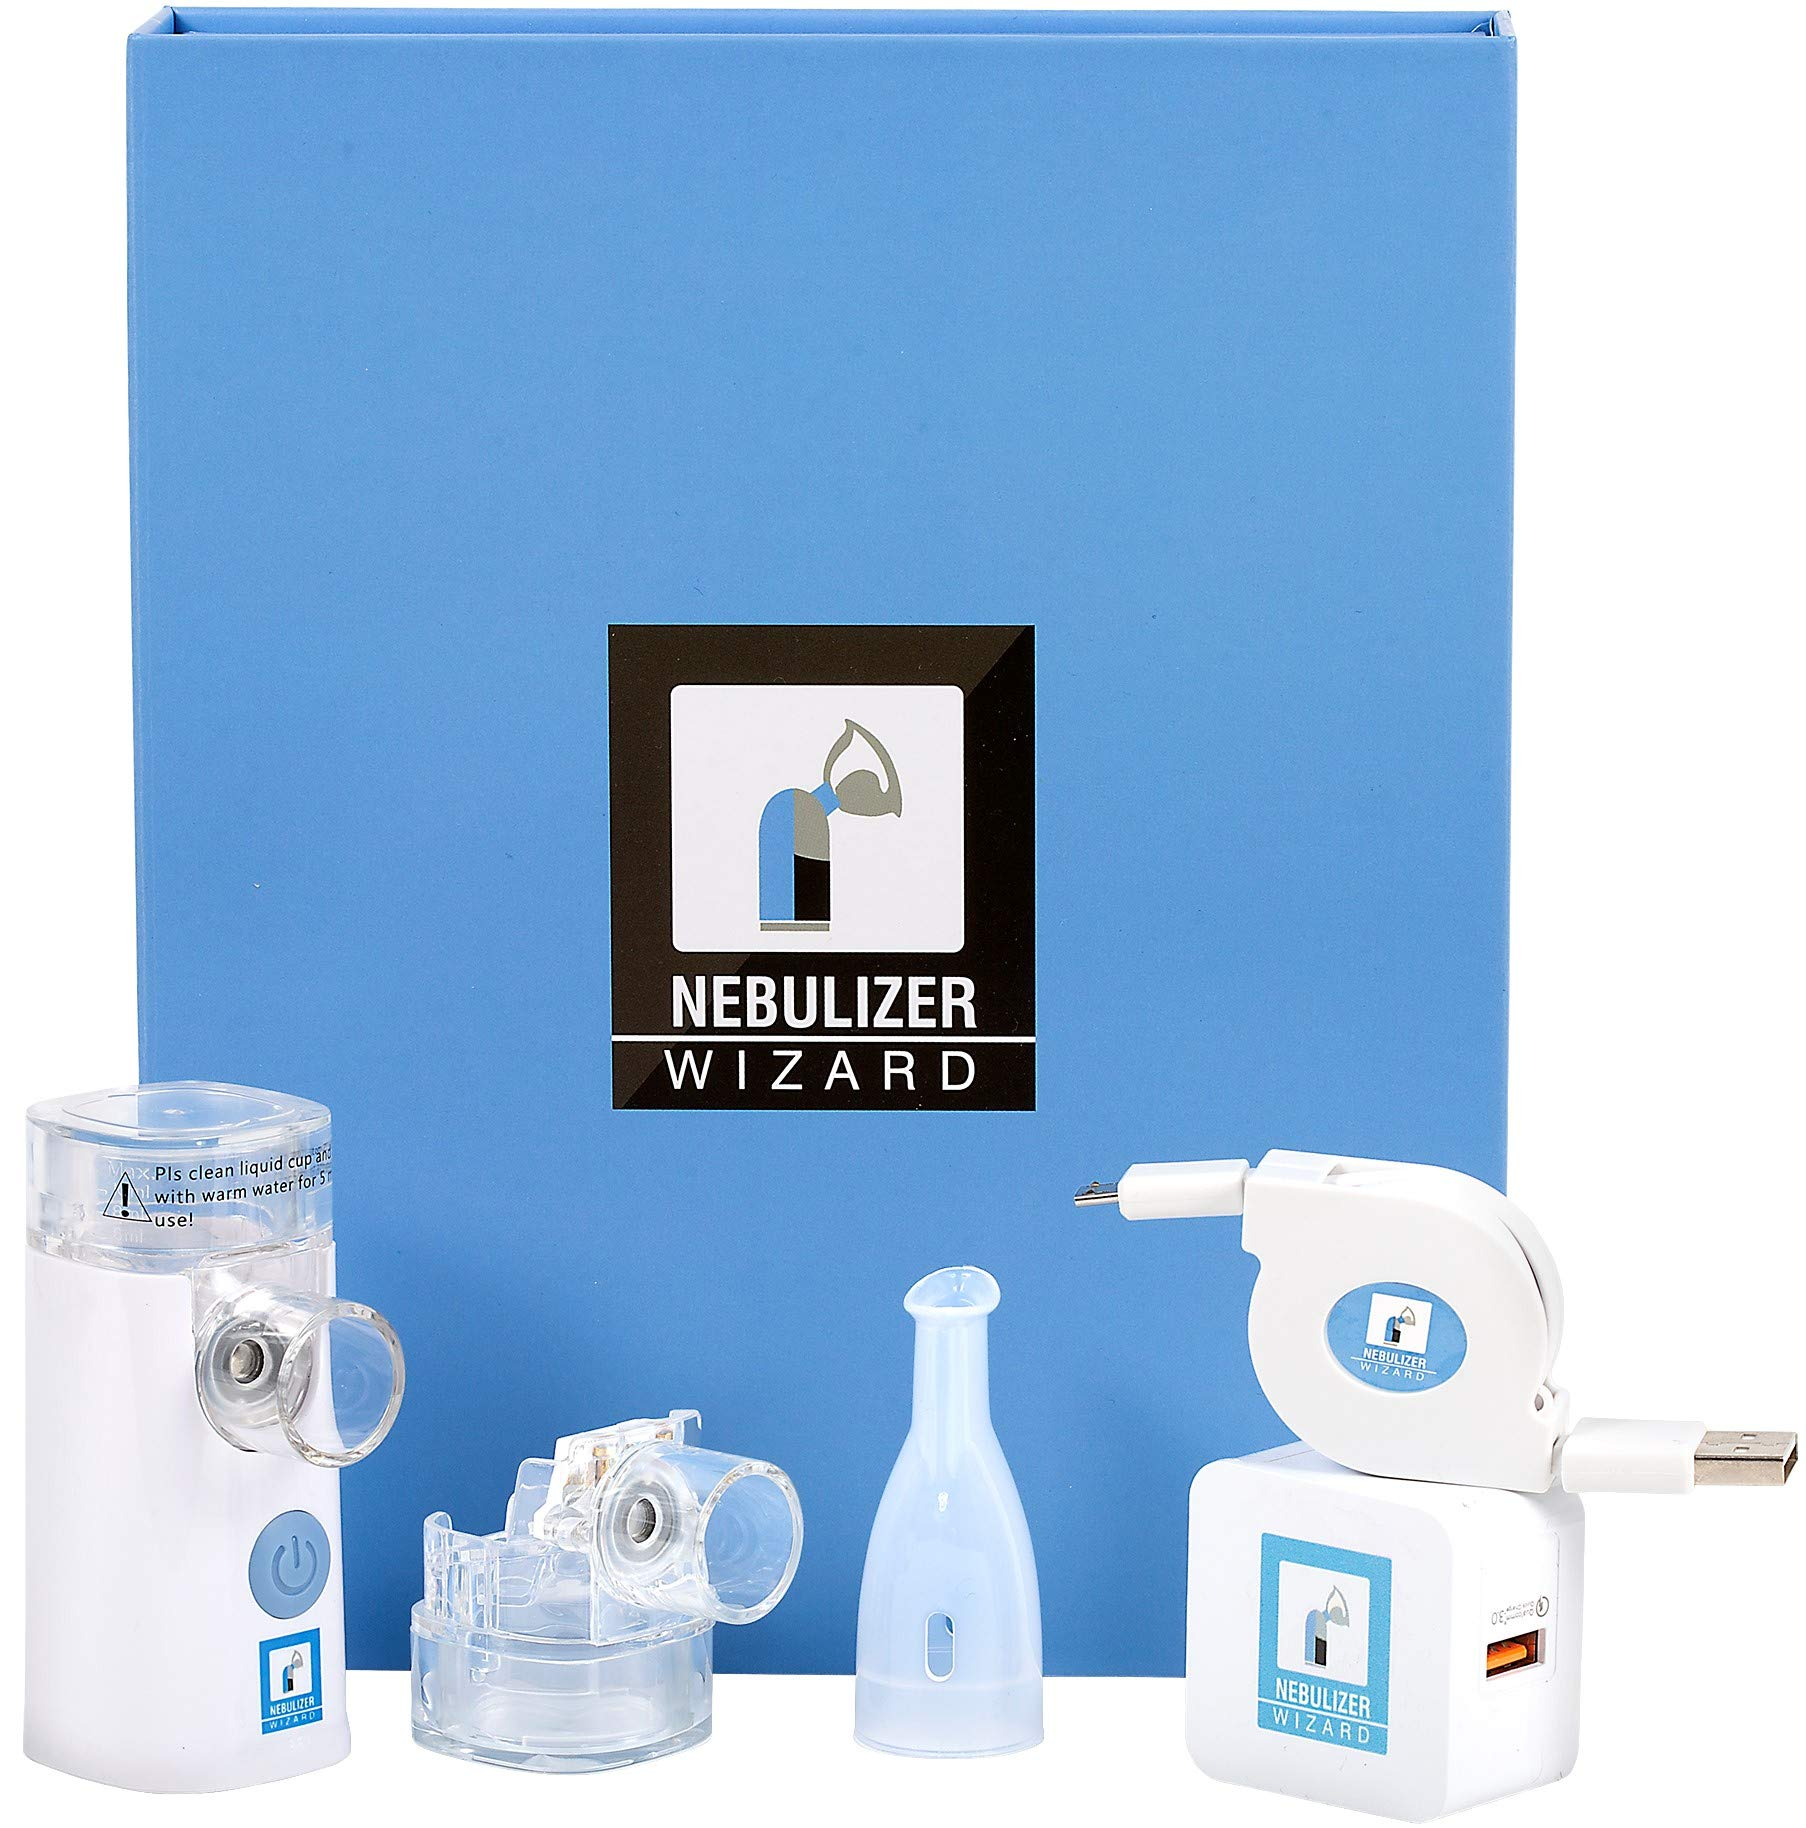 Nebulizer Wizard - Rechargeable Silent Portable for Home & Travel - Worlds Most Effective Delivery System - If You are Not Satisfied for Any Reason We Will Refund You in Full + Extra $20 + Keep 1